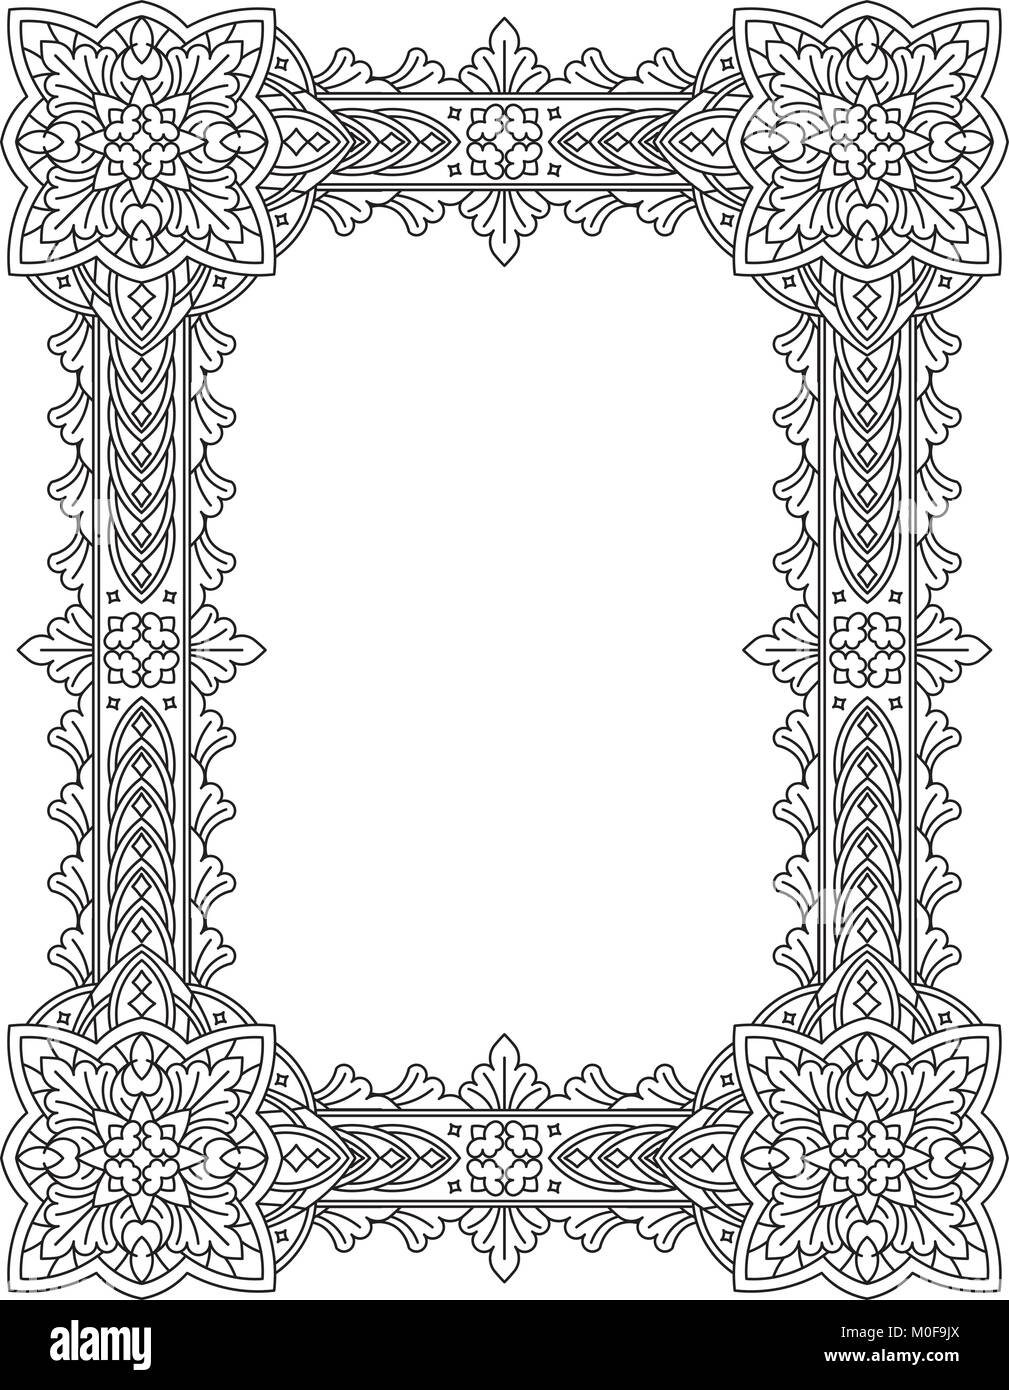 Vintage decorative frame can be used for retro vintage greeting can be used for retro vintage greeting card or invitation indian persian islam arabic motifs m4hsunfo